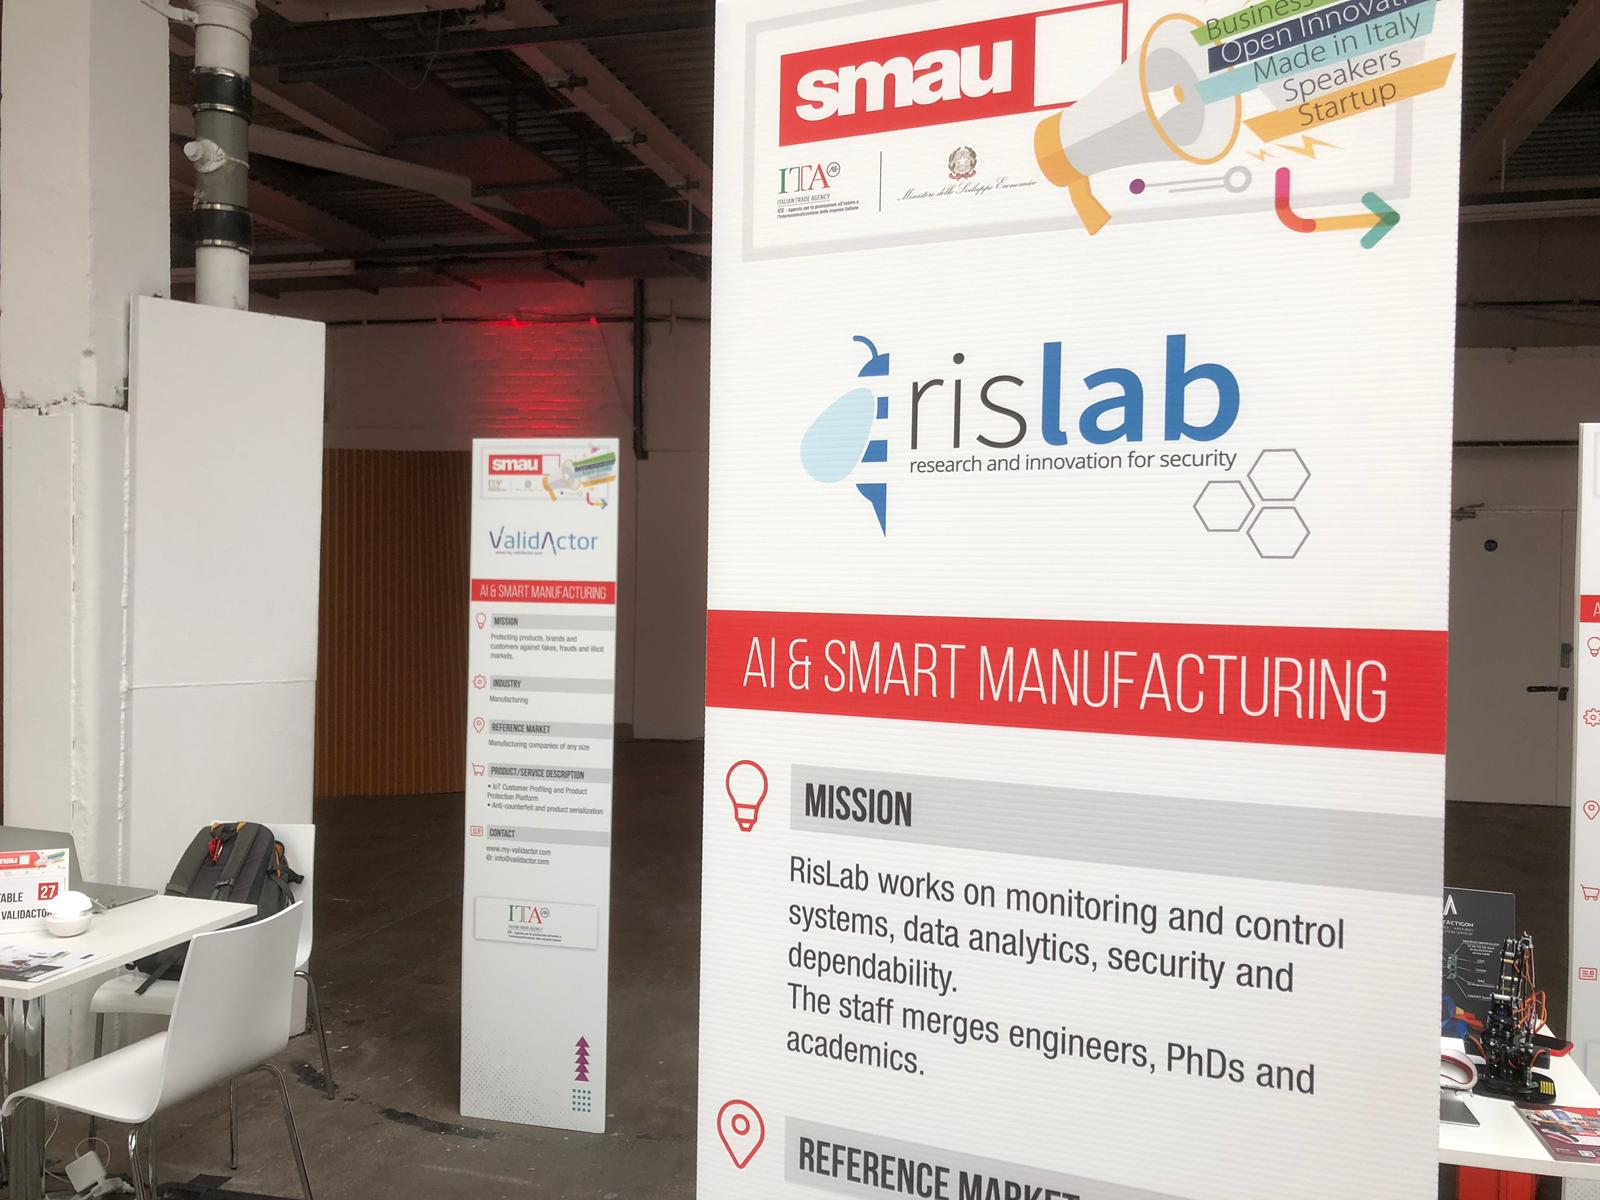 RisLab a Smau London 2019